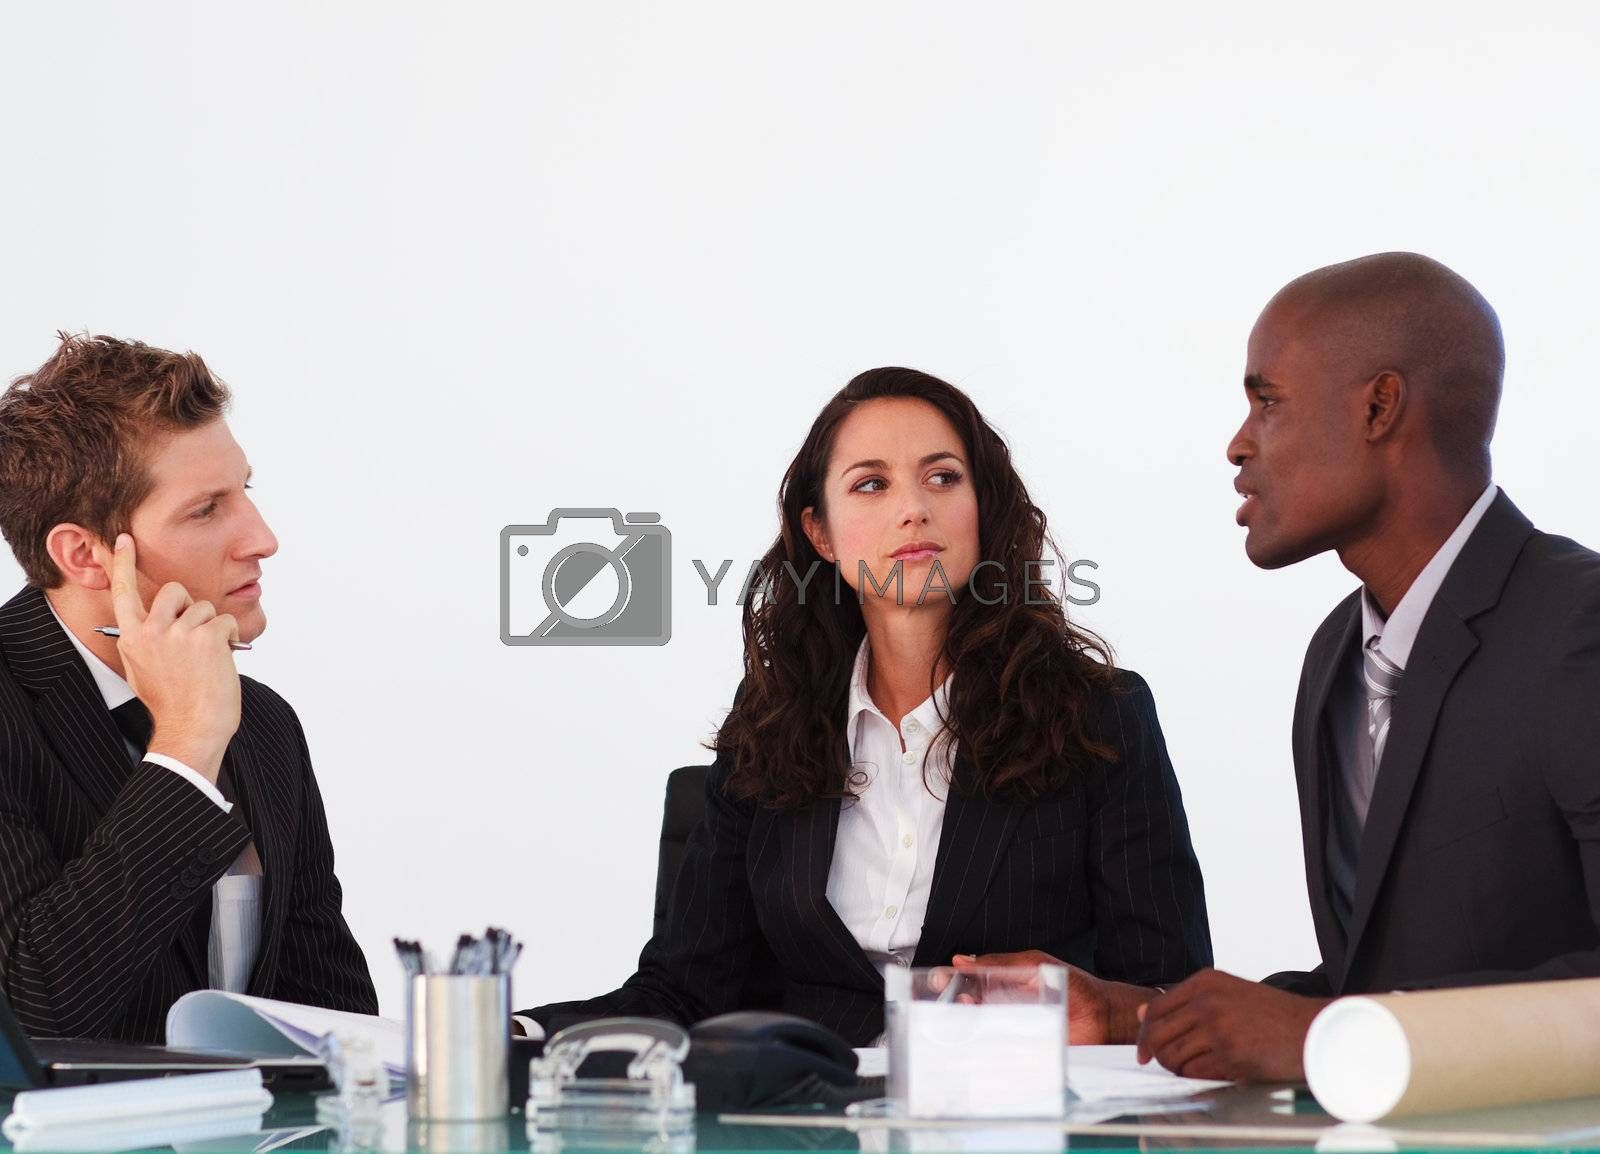 Three business people interacting in a meeting by Wavebreakmedia